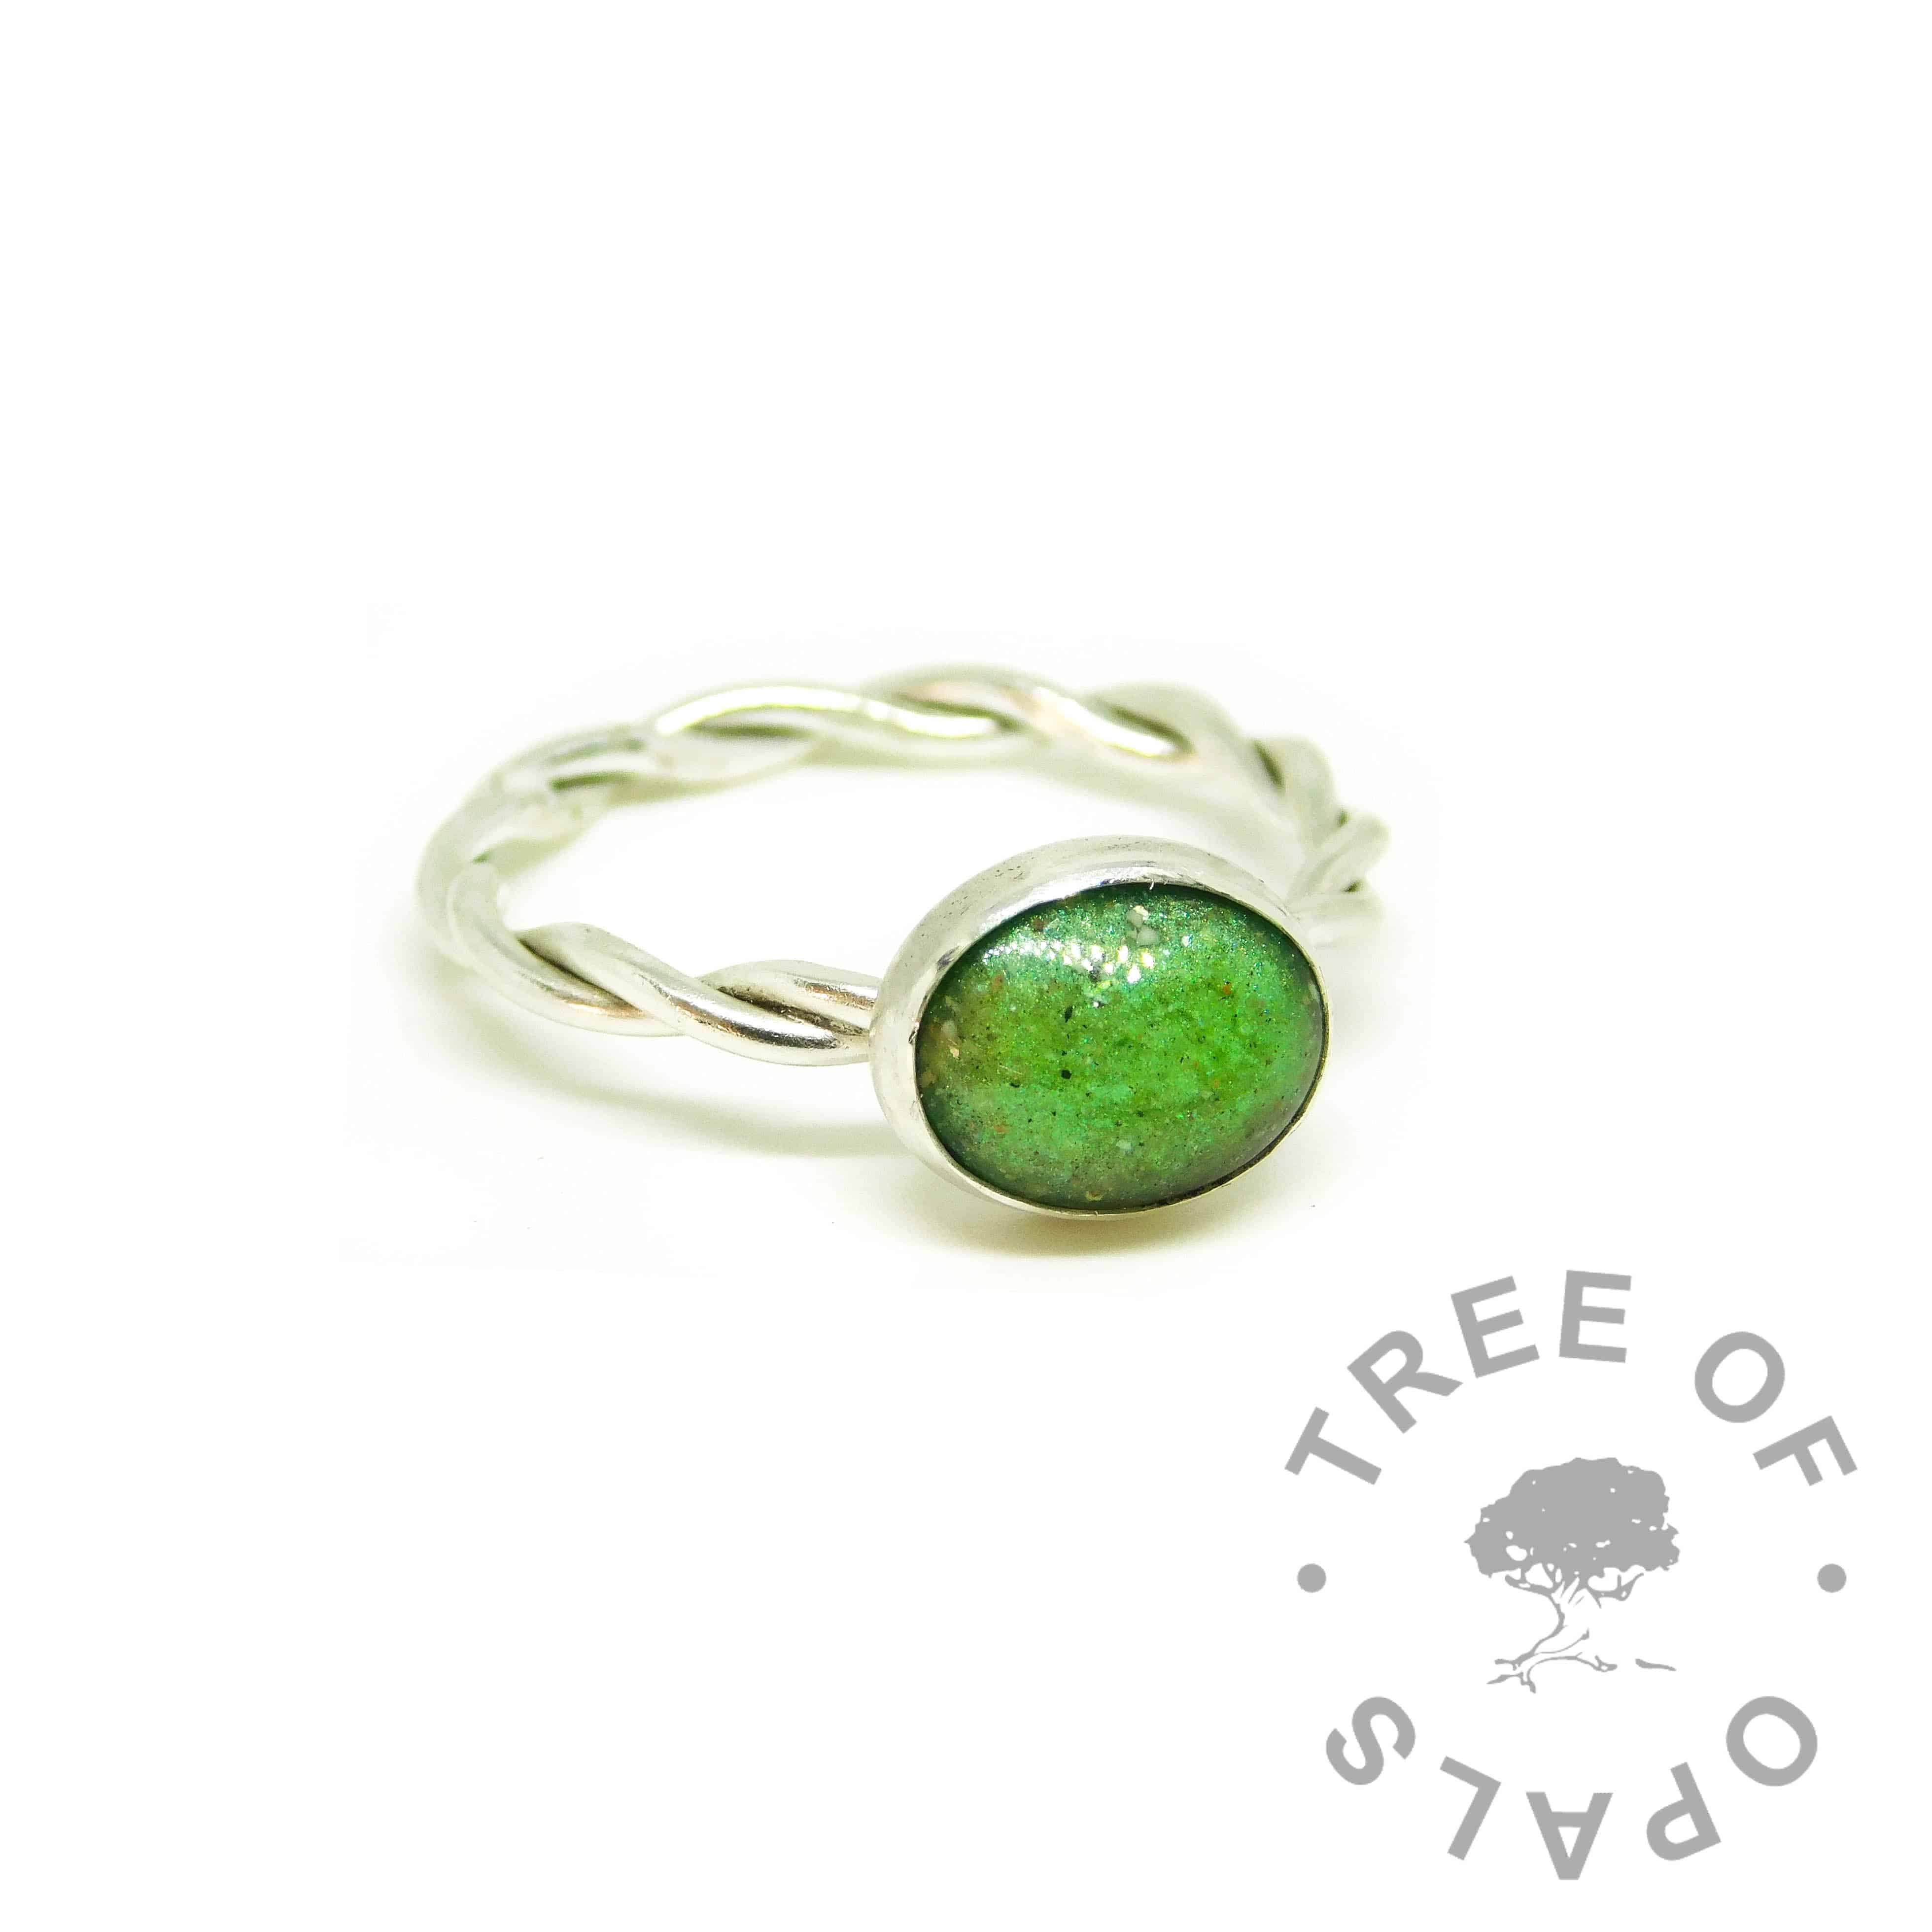 green ashes ring, basilisk green resin sparkle mix, twisted wire Argentium silver band